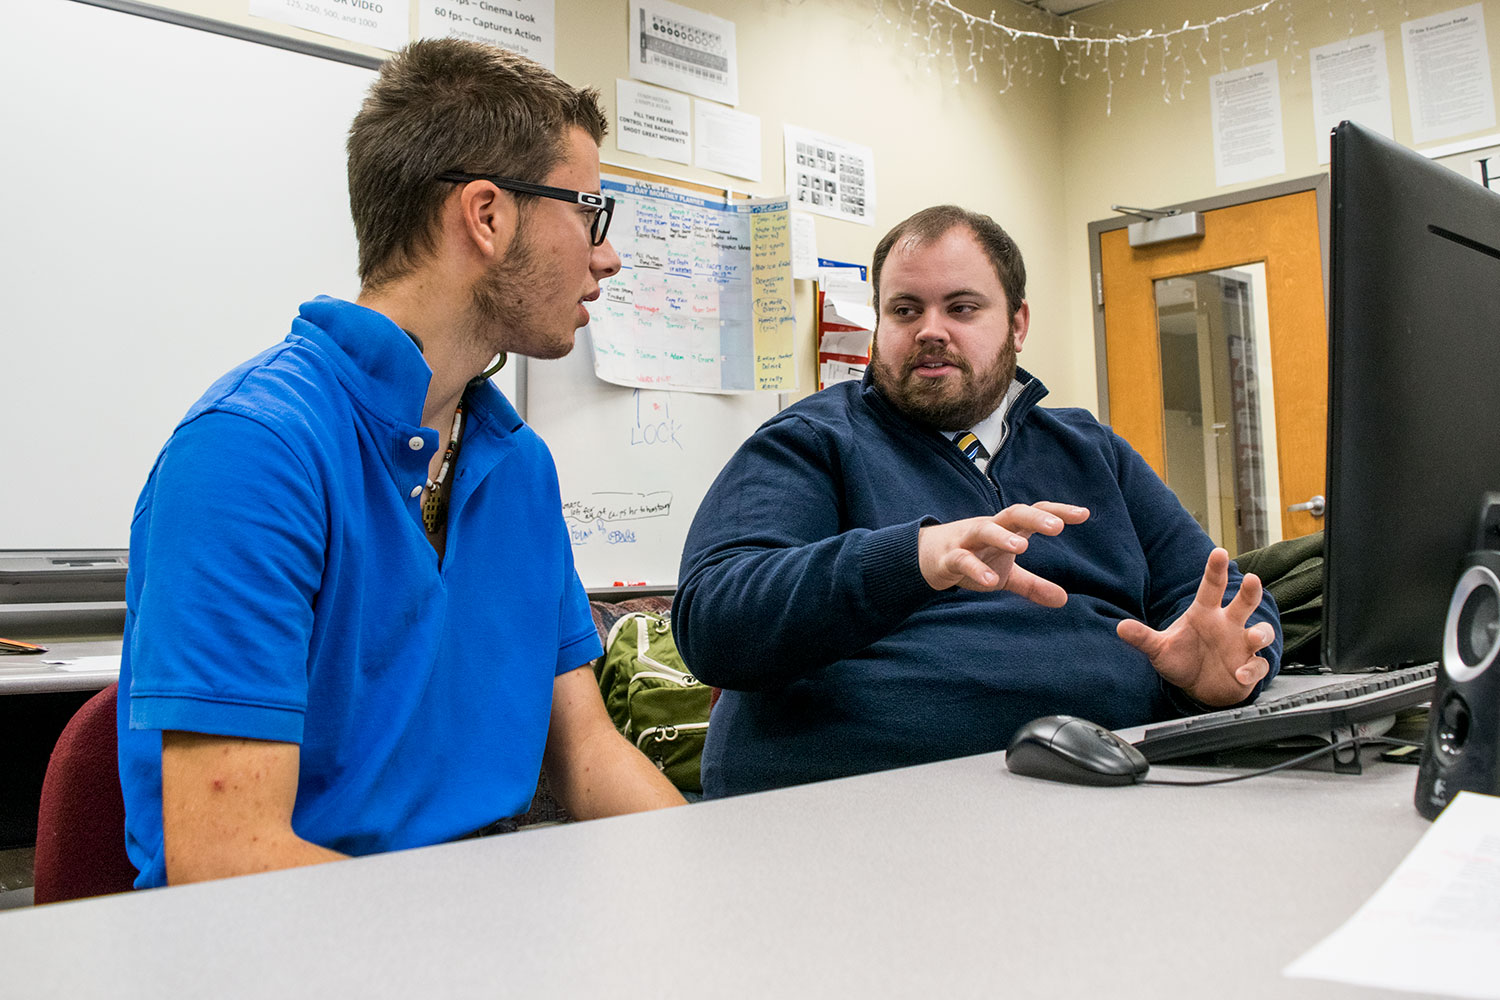 In an effort to improve his programming skills, senior Justin McNeil discusses the C# program with computer science teacher Ryan Sextro. McNeil is learning the computer language as part of his independent study program.